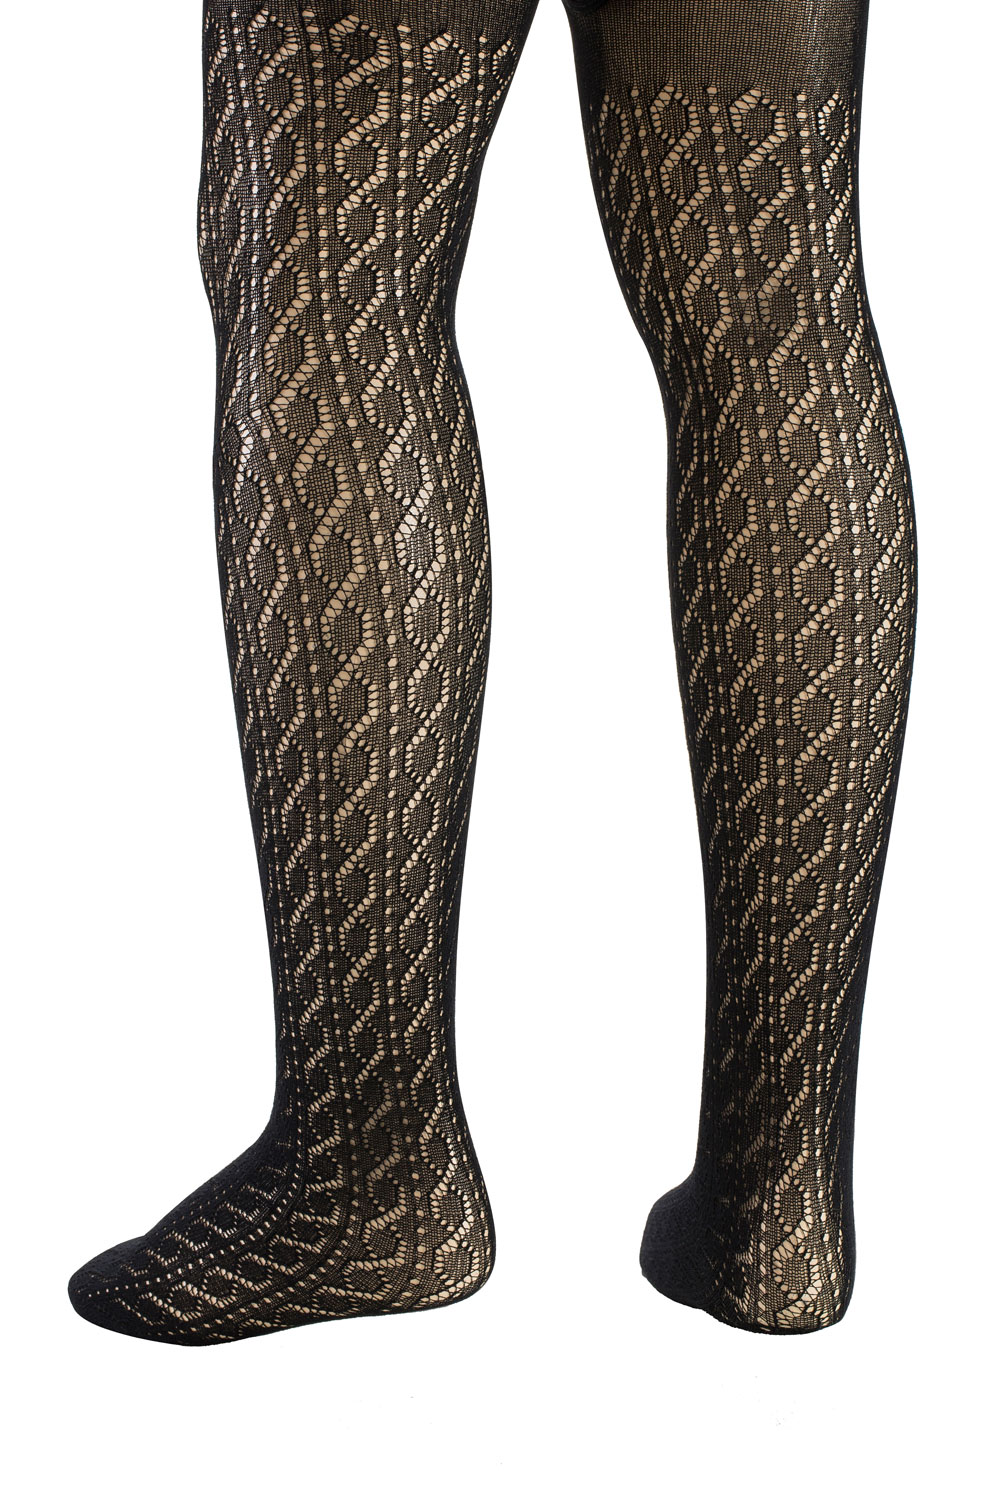 b0be3681522 KneesNToes.net - Serlei Kids Crochet Cabled Designed Tights Black ...